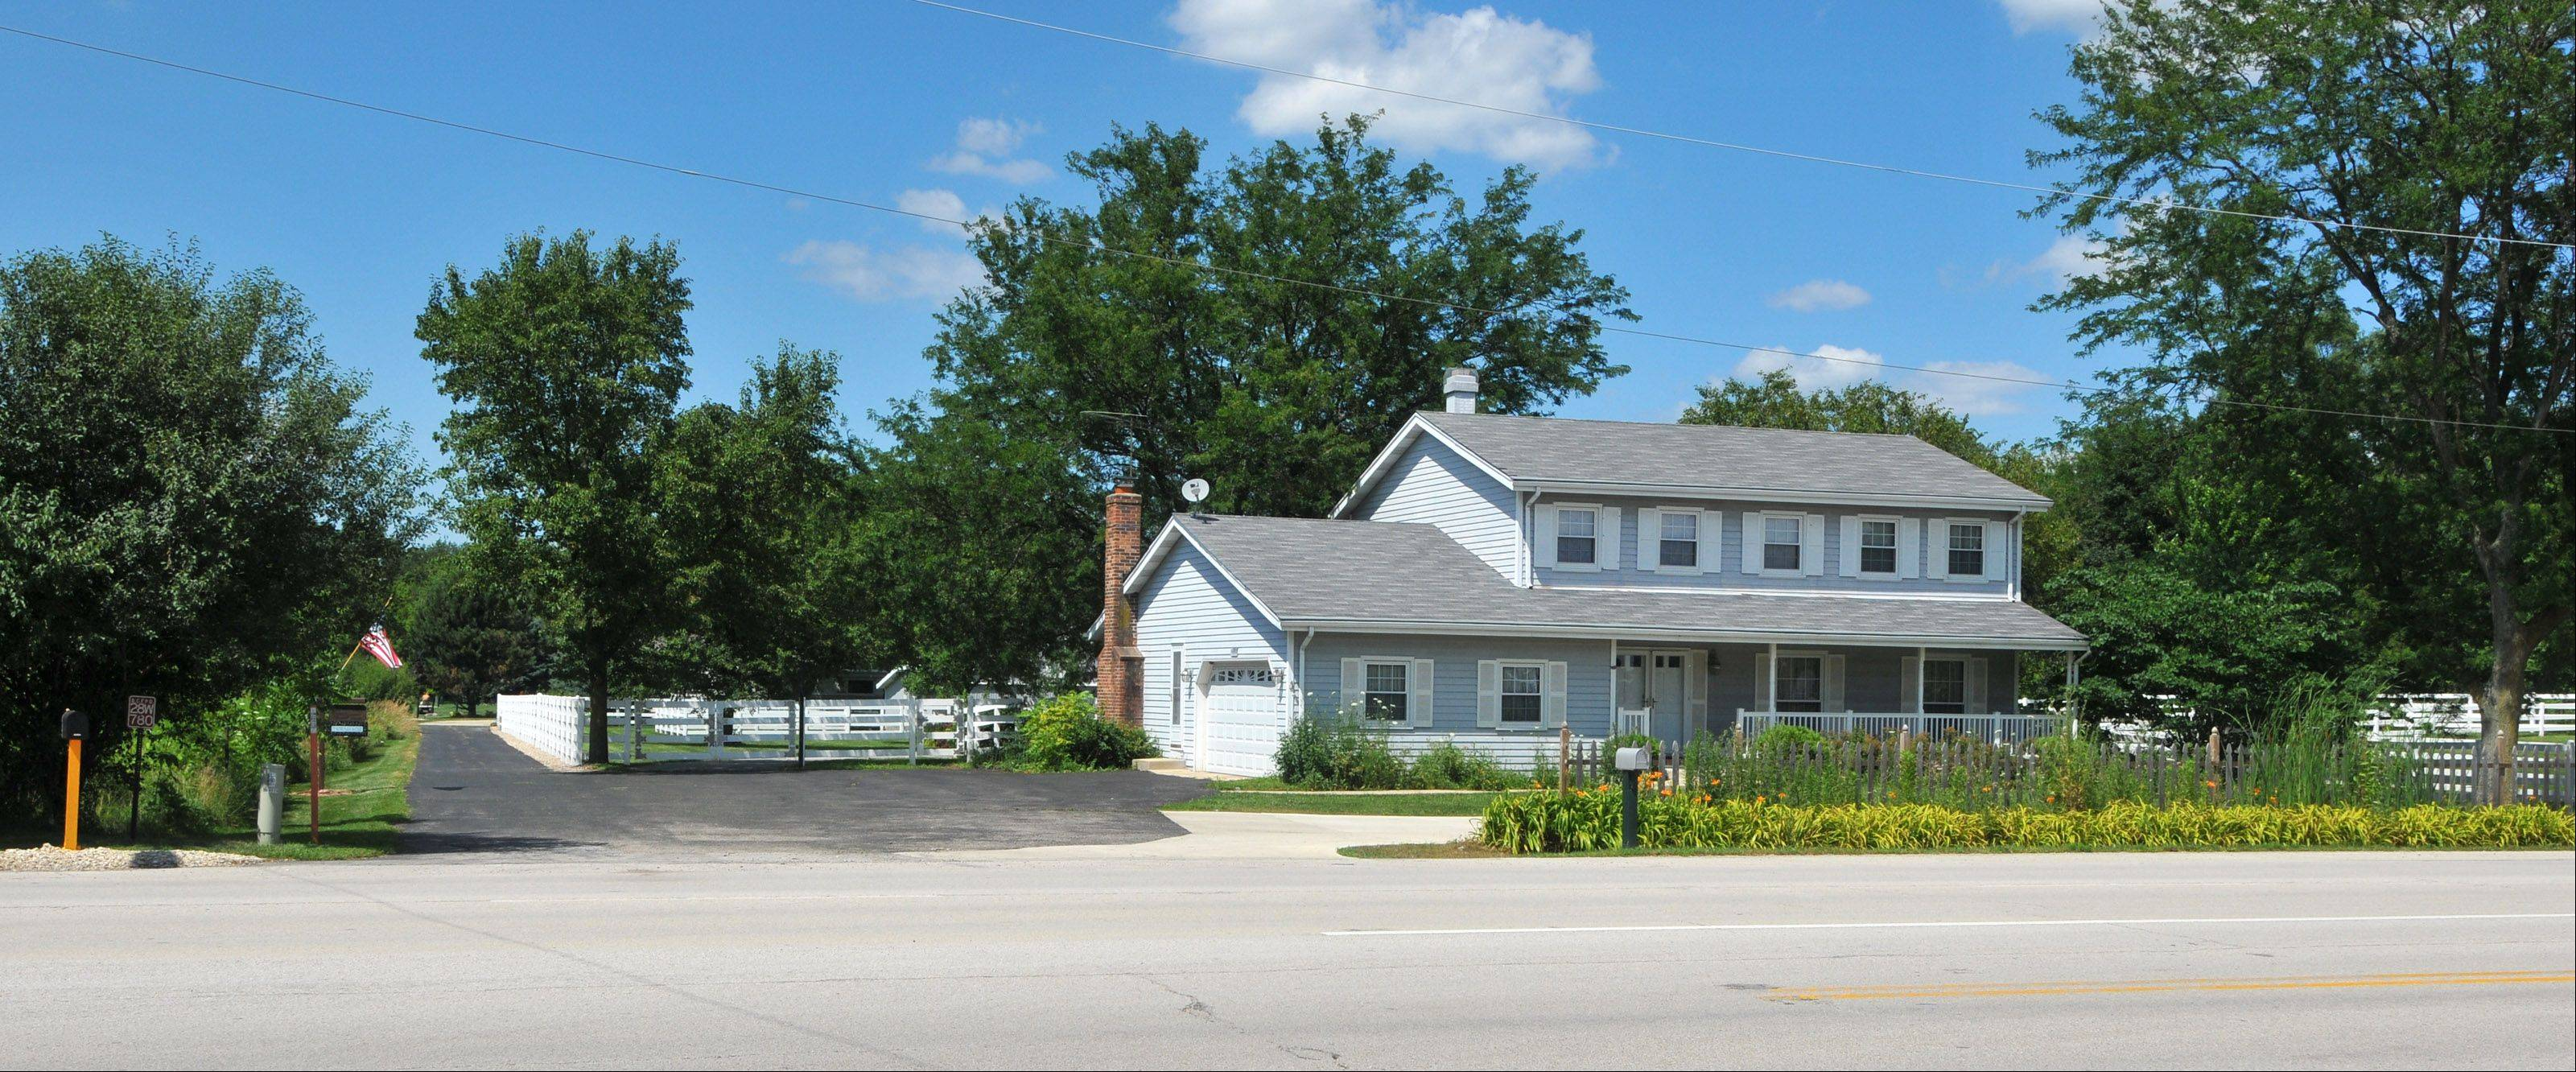 The Islamic Center of Western Suburbs has won DuPage County�s approval to convert a house near West Chicago into a religious institution.